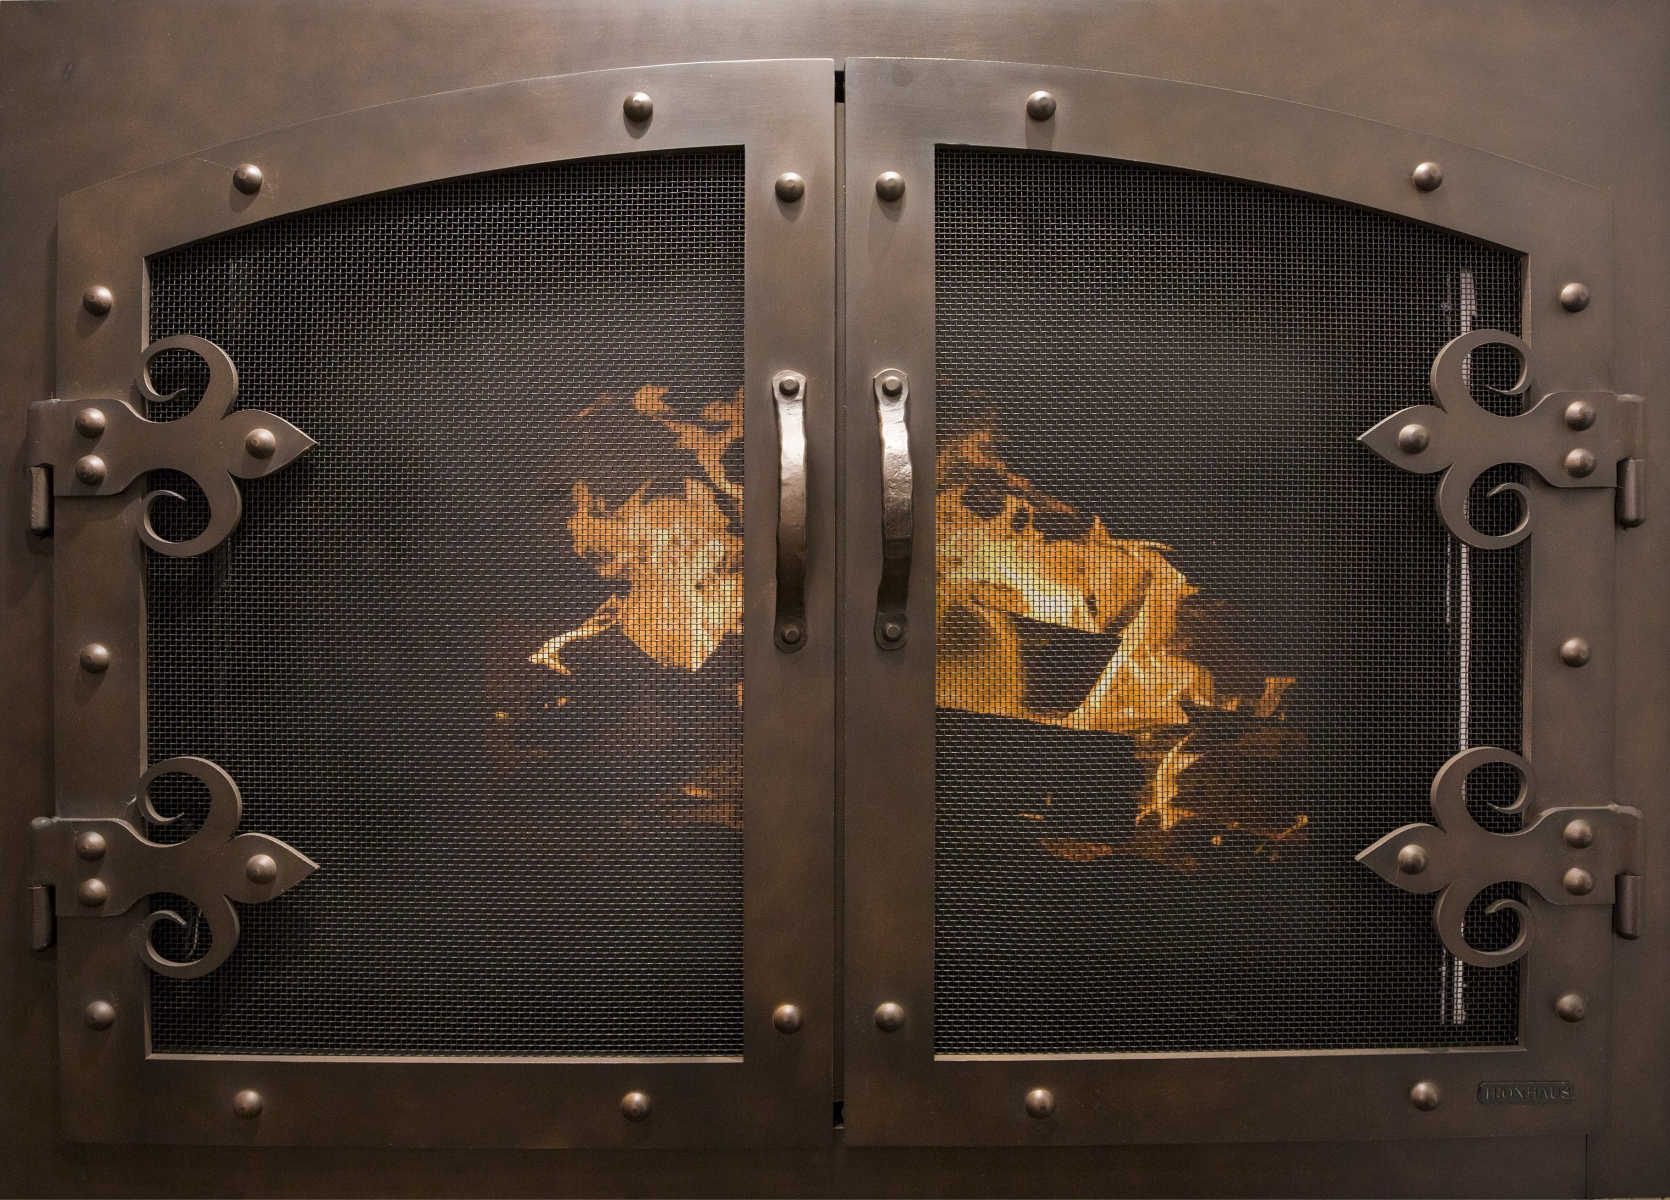 Grand Forge II Door Brushed Black Copper Finish With Fleur-de-lis Hinge